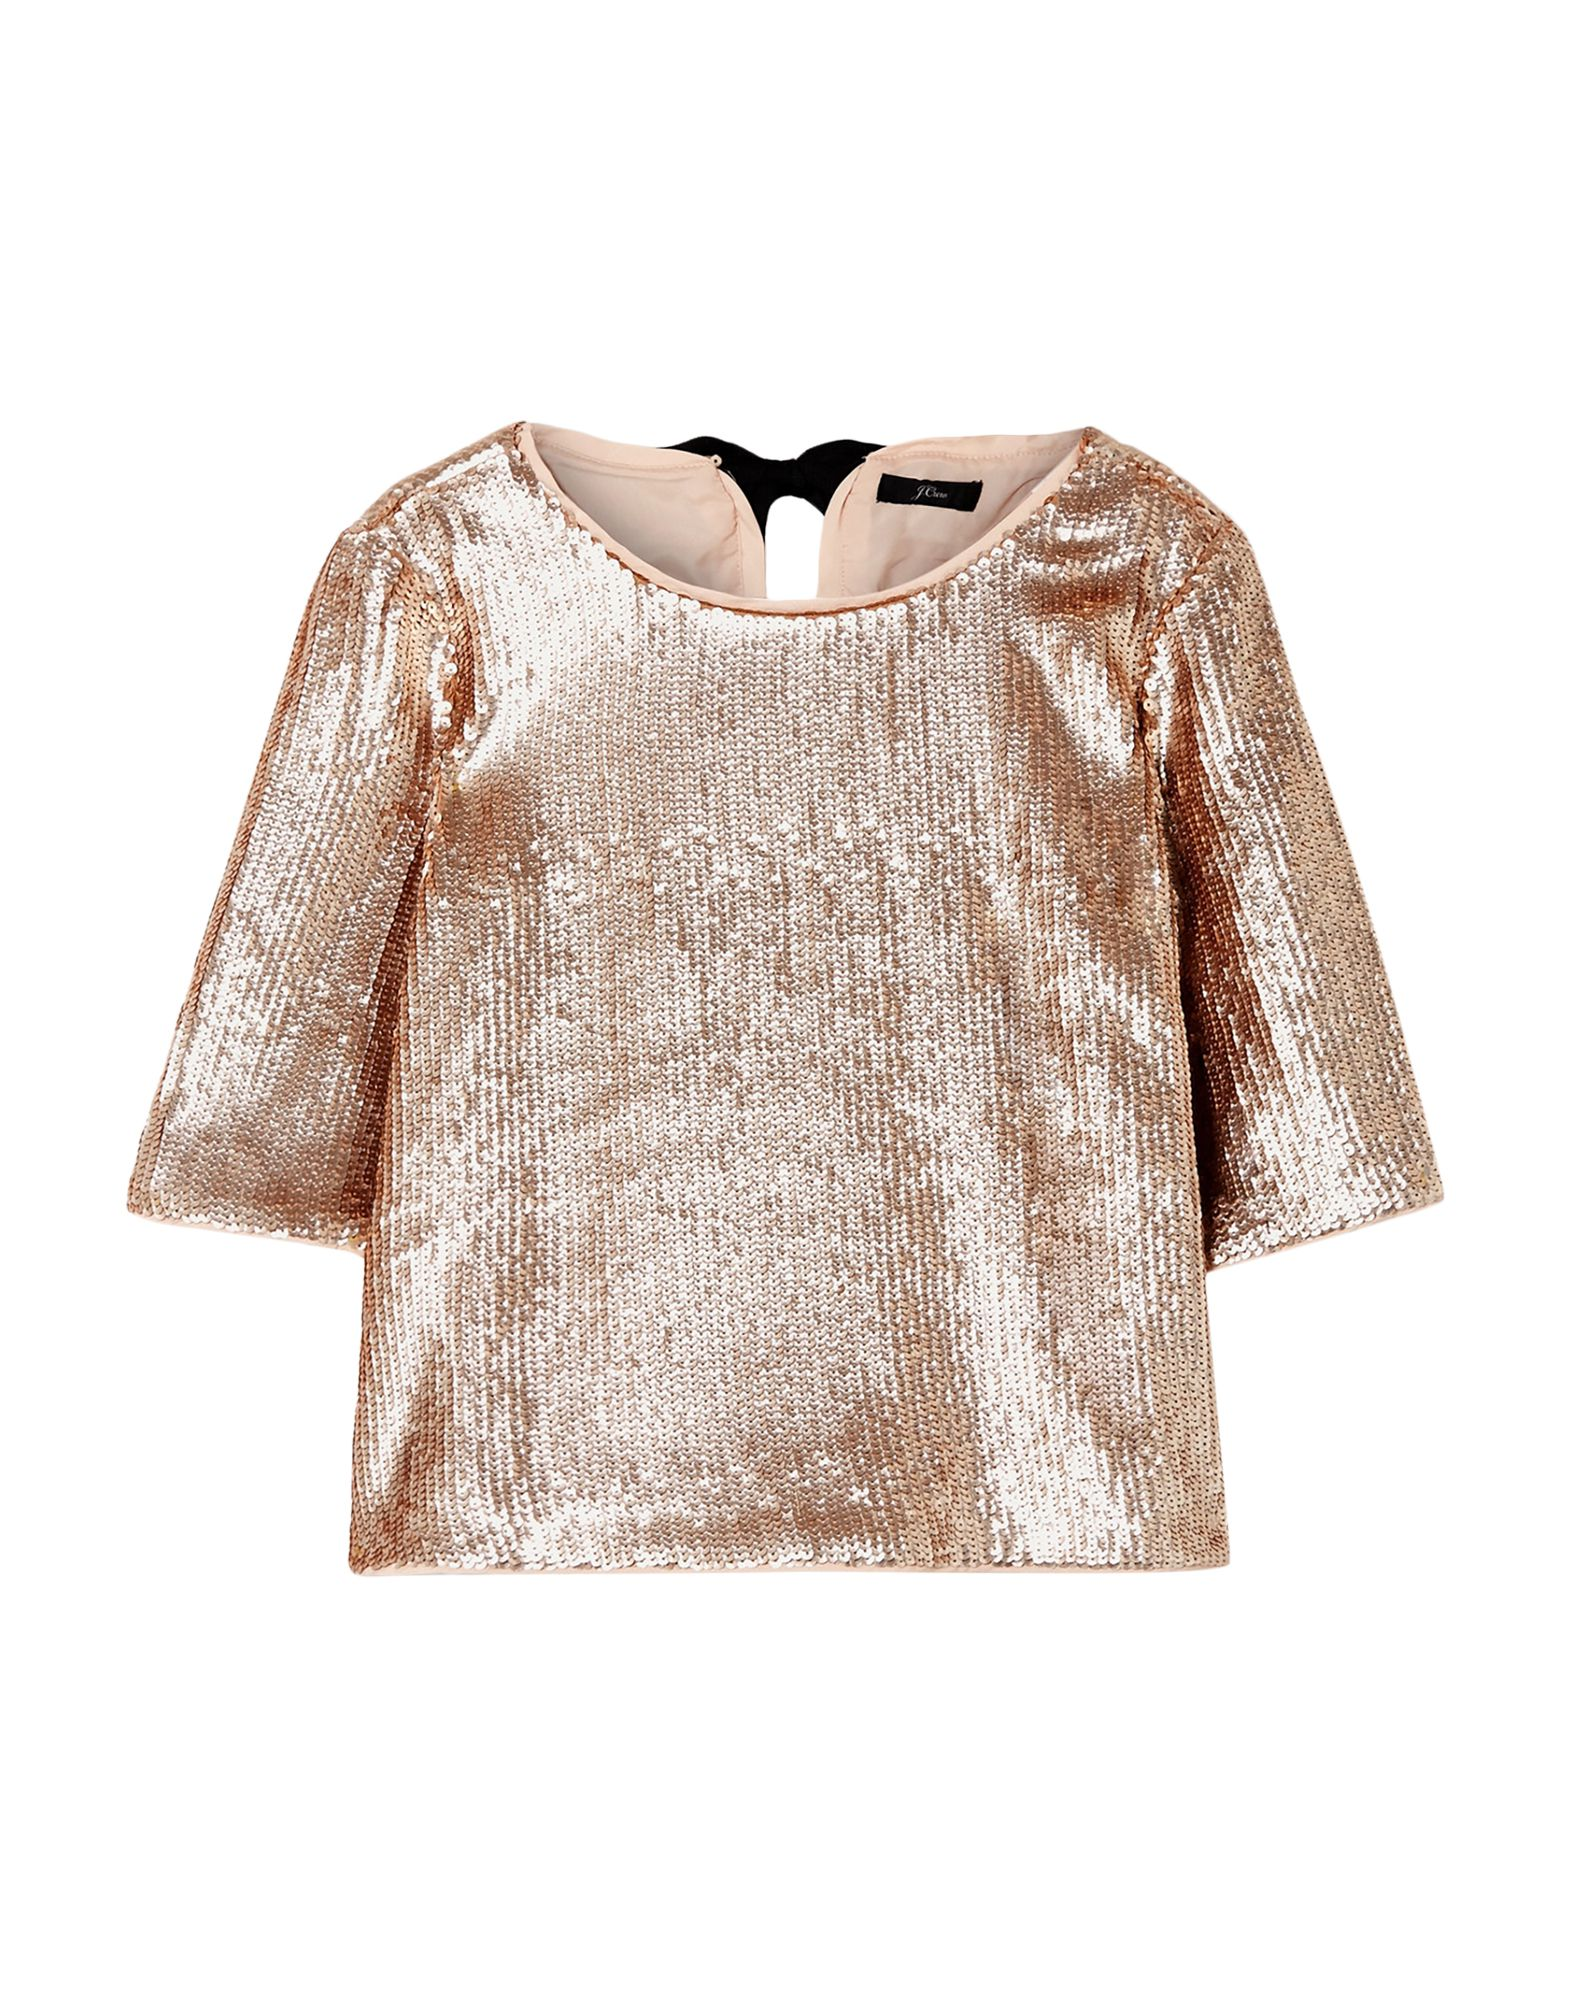 J.CREW Blouses. crepe, no appliqués, basic solid color, rear closure, self-tie wrap closure, short sleeves, round collar, no pockets, fully lined. 100% Polyester